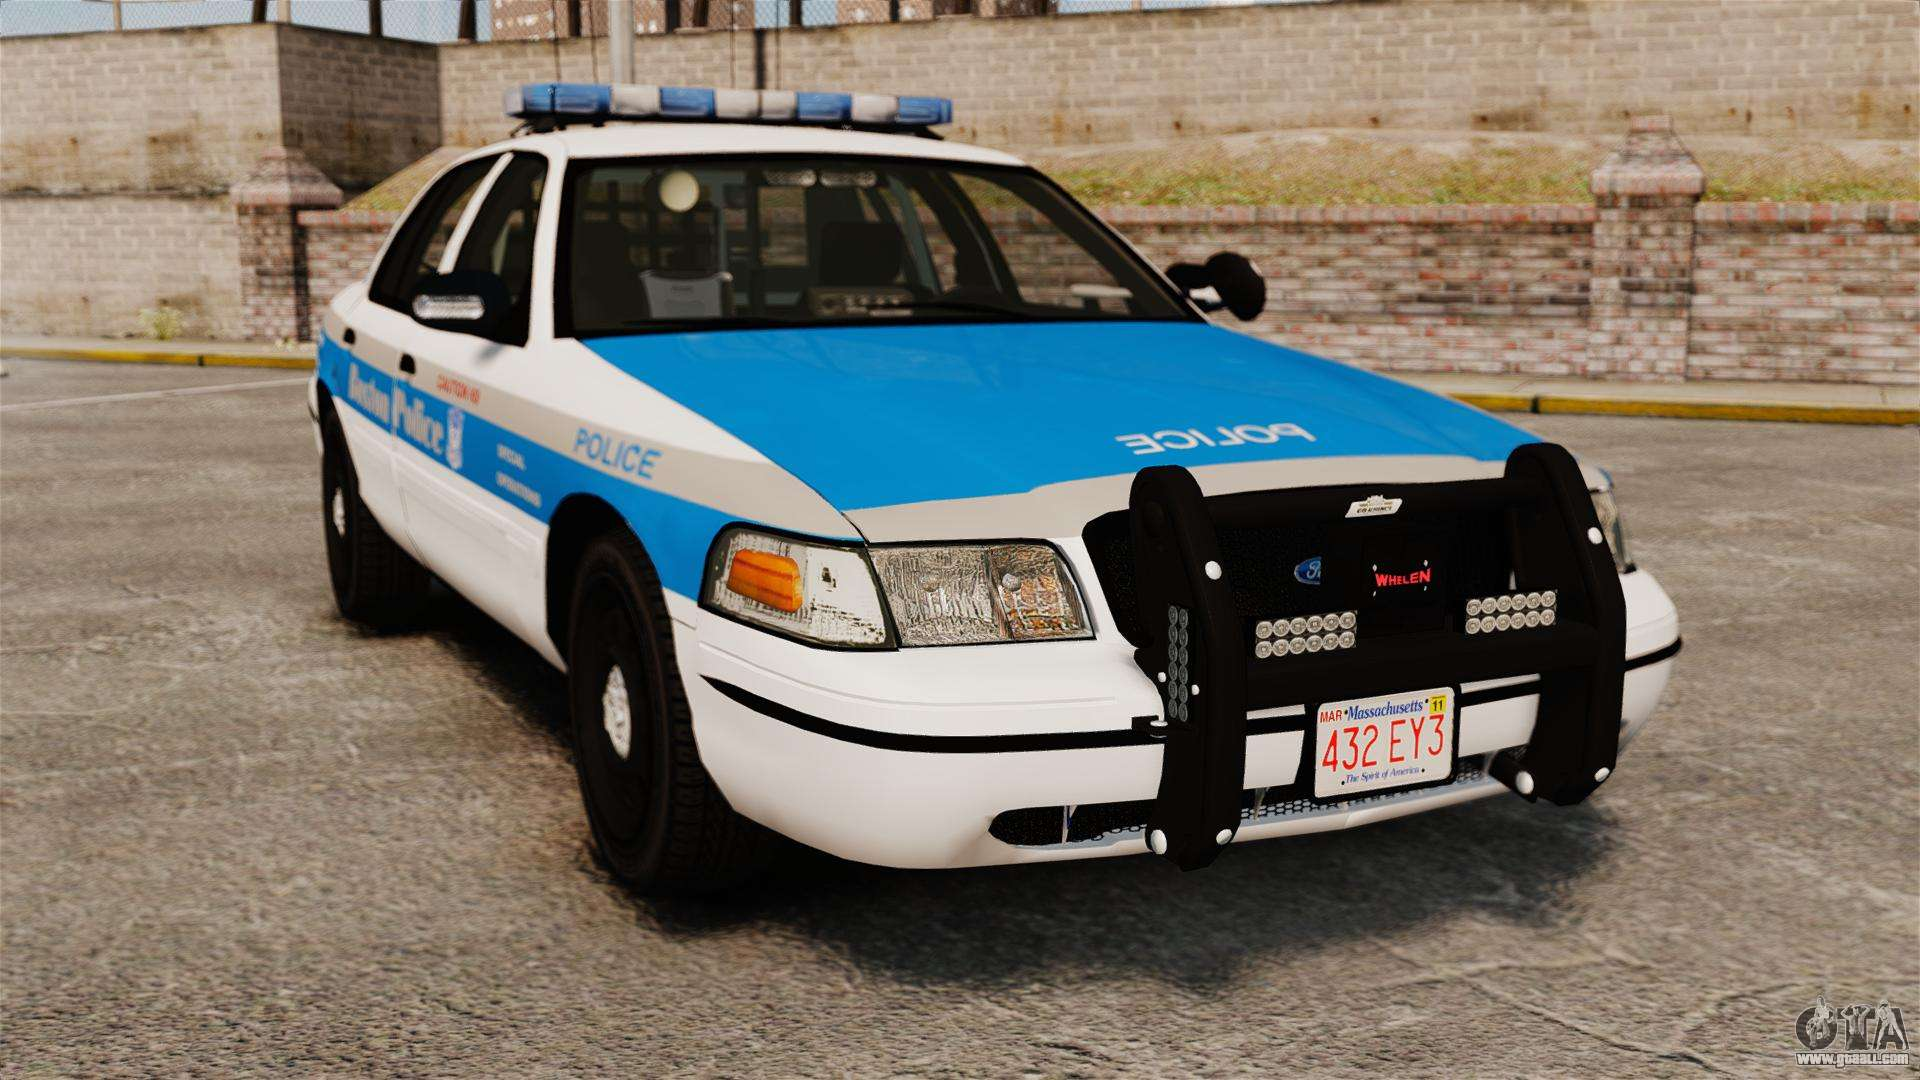 34048 Gta V Elegy Rh8 further 34090 Gta V Inuetero Coquette Hardtop Dtd furthermore 18526 Swat Nypd Enforcer V11 likewise Map moreover 28843 Ford Crown Victoria Police Massachusetts Els. on gta 5 patriot